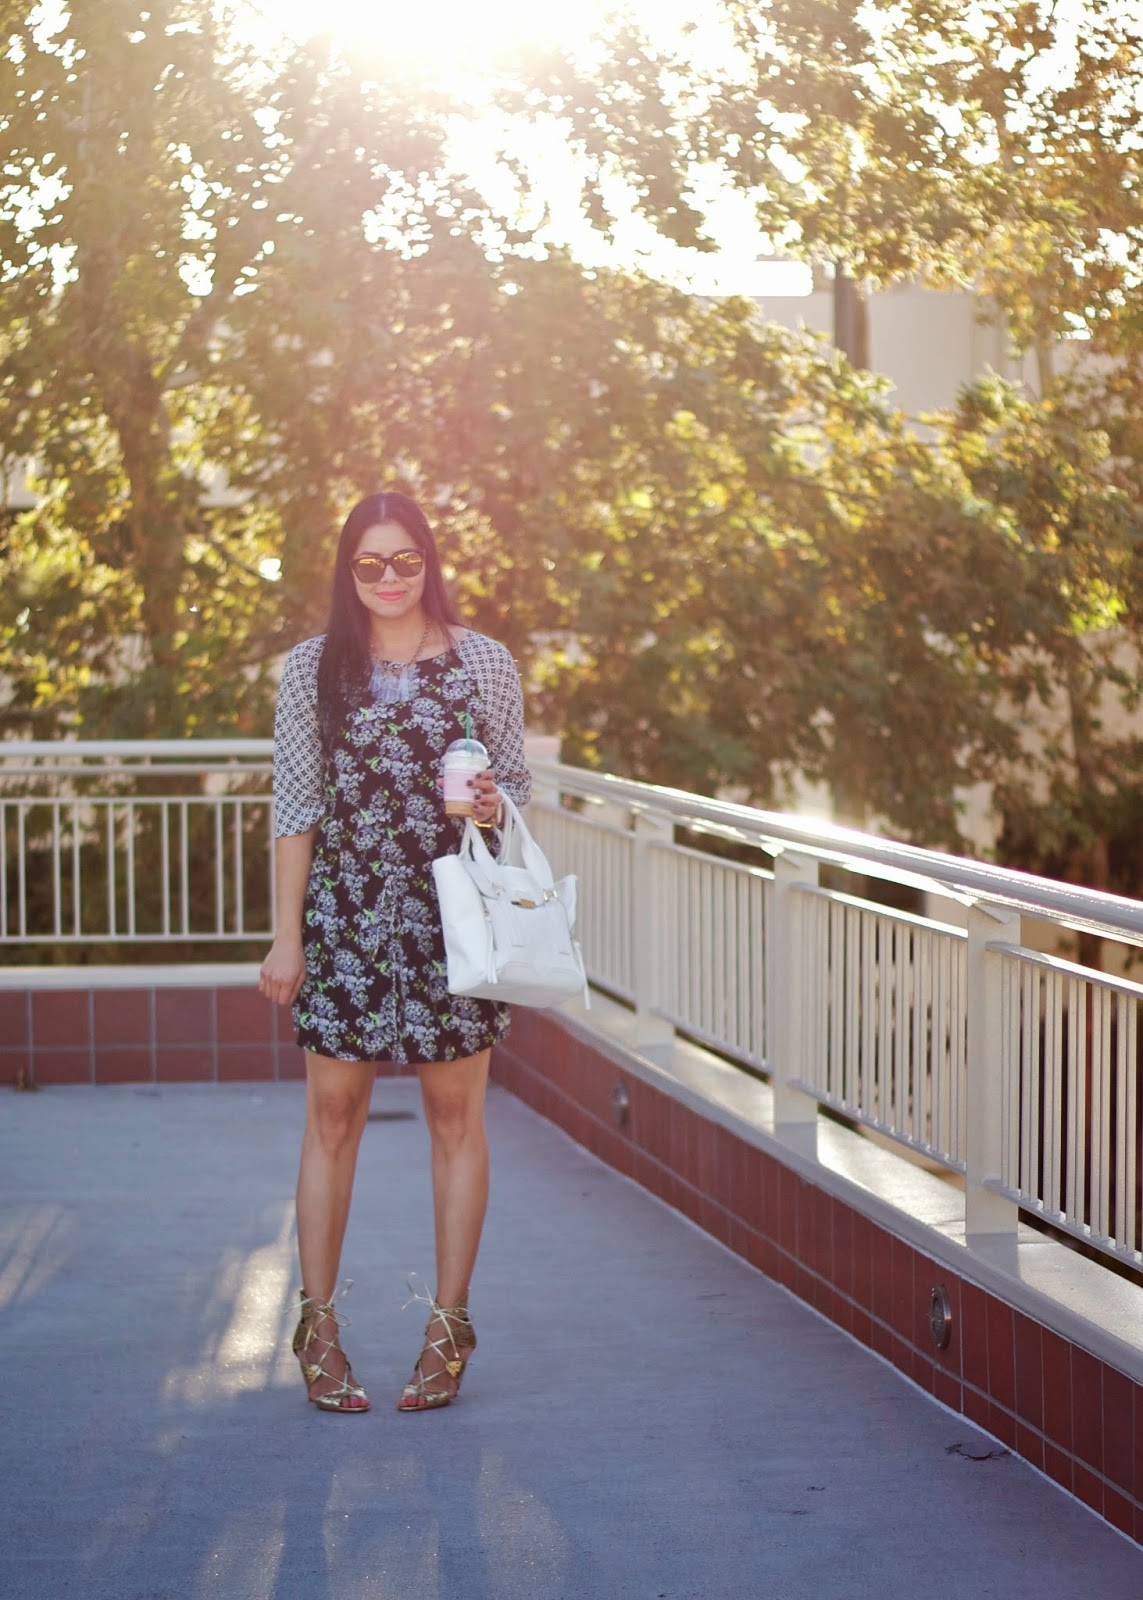 #f21xme, Forever 21 dress, best of Forever 21 dresses, san diego Fall Fashion 2014, san diego fashion 2014, so cal fall fashion, san diego fashion blogger, fall in san diego fashion